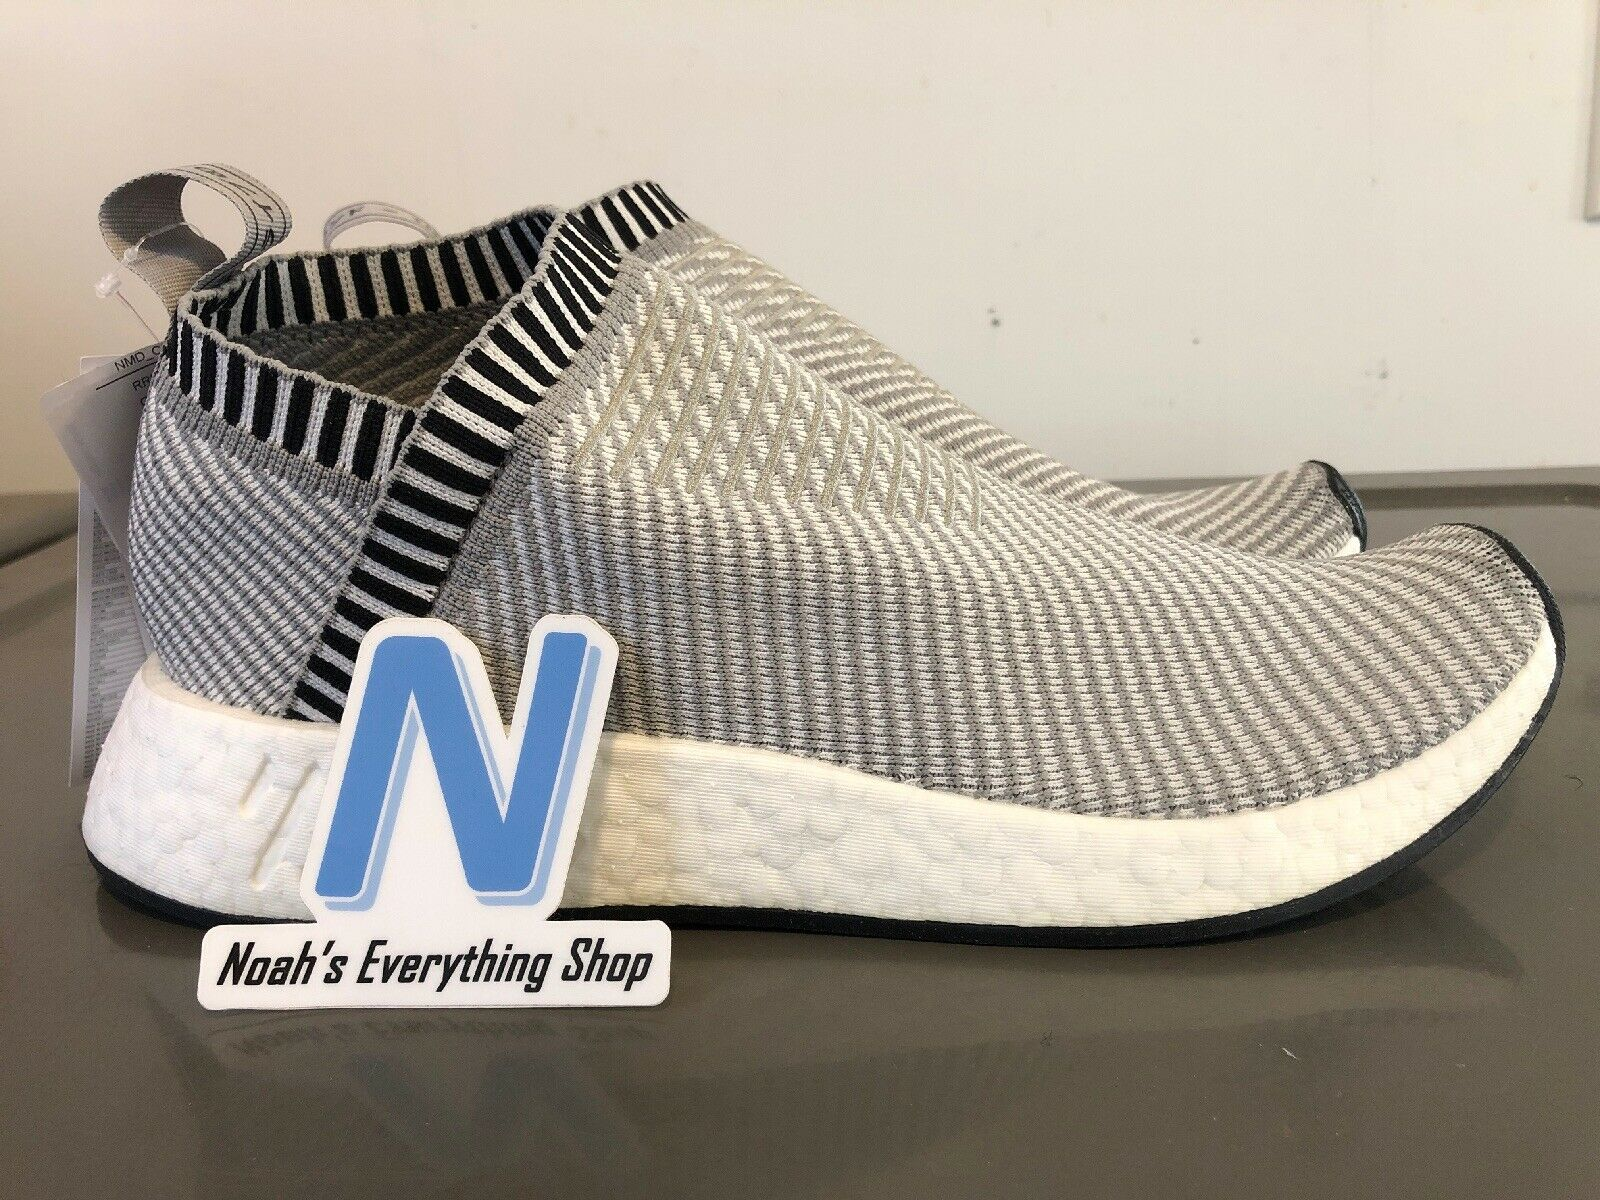 Adidas NMD CS2 Primeknit Running shoes BA7187 Brand New Size 9.5